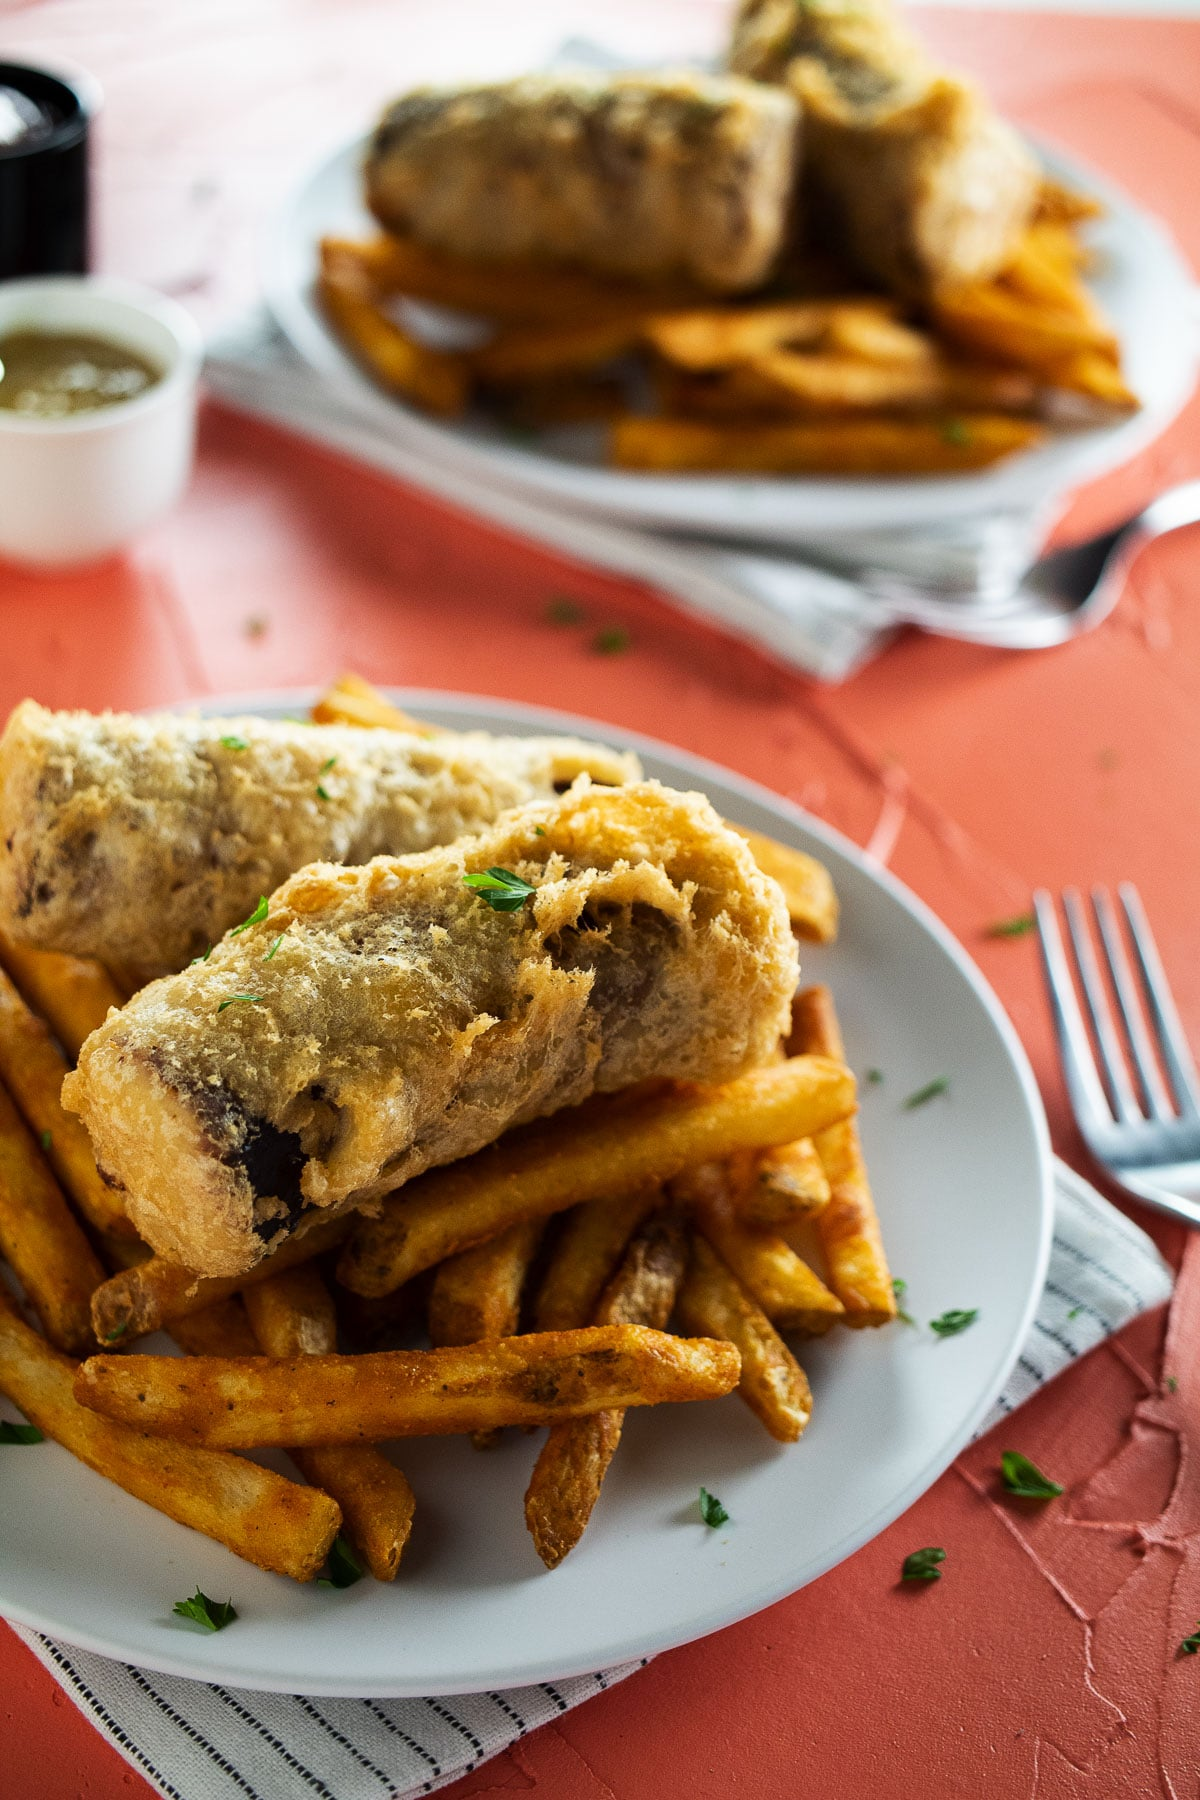 Up close image of battered sausages and fries.